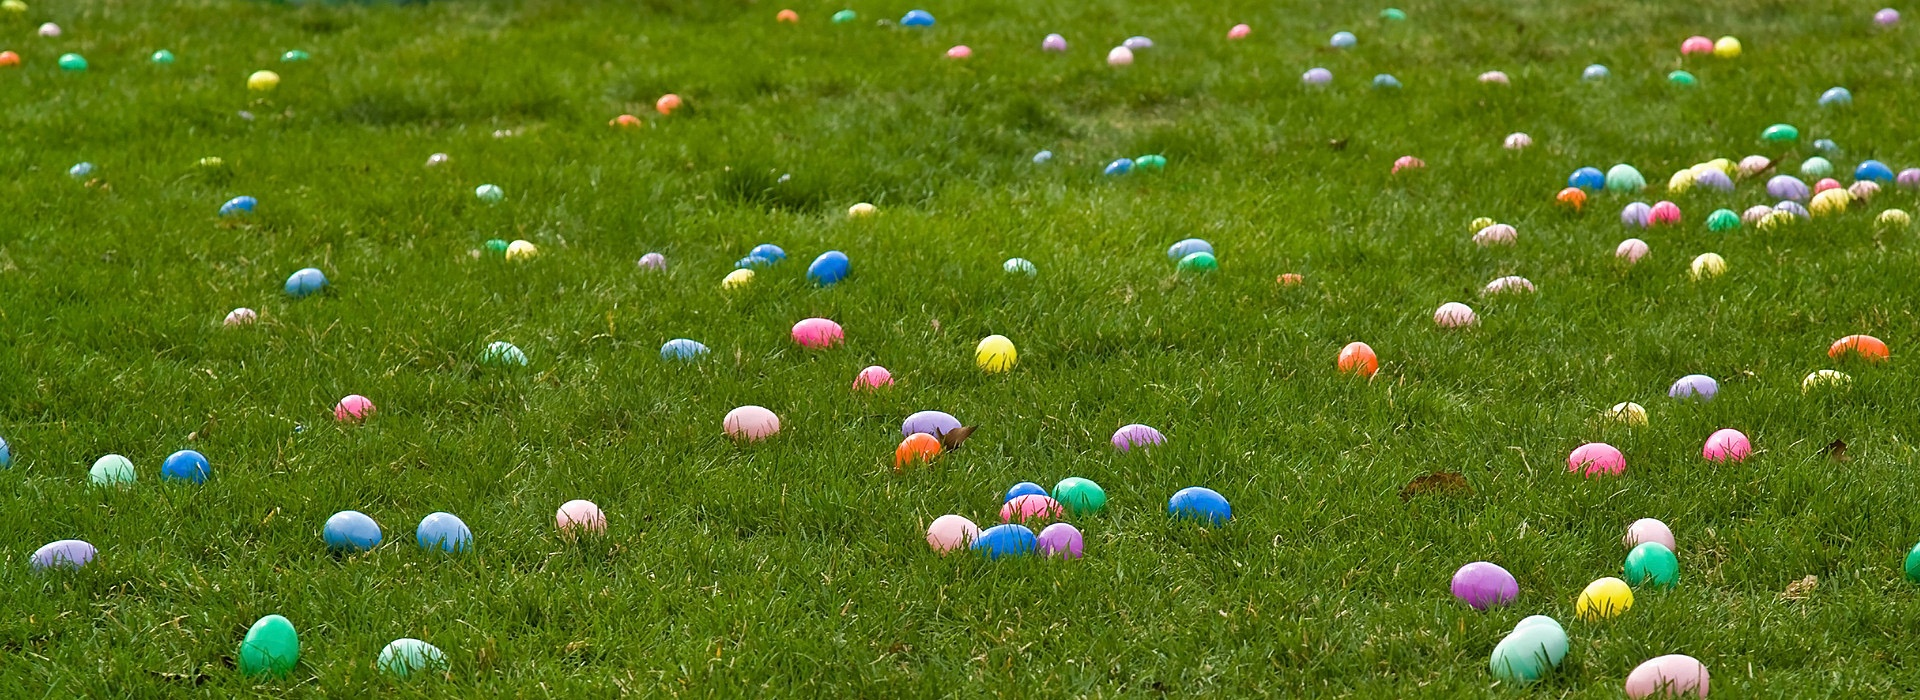 Helicopter Easter Egg Drops - Fundraising Ideas